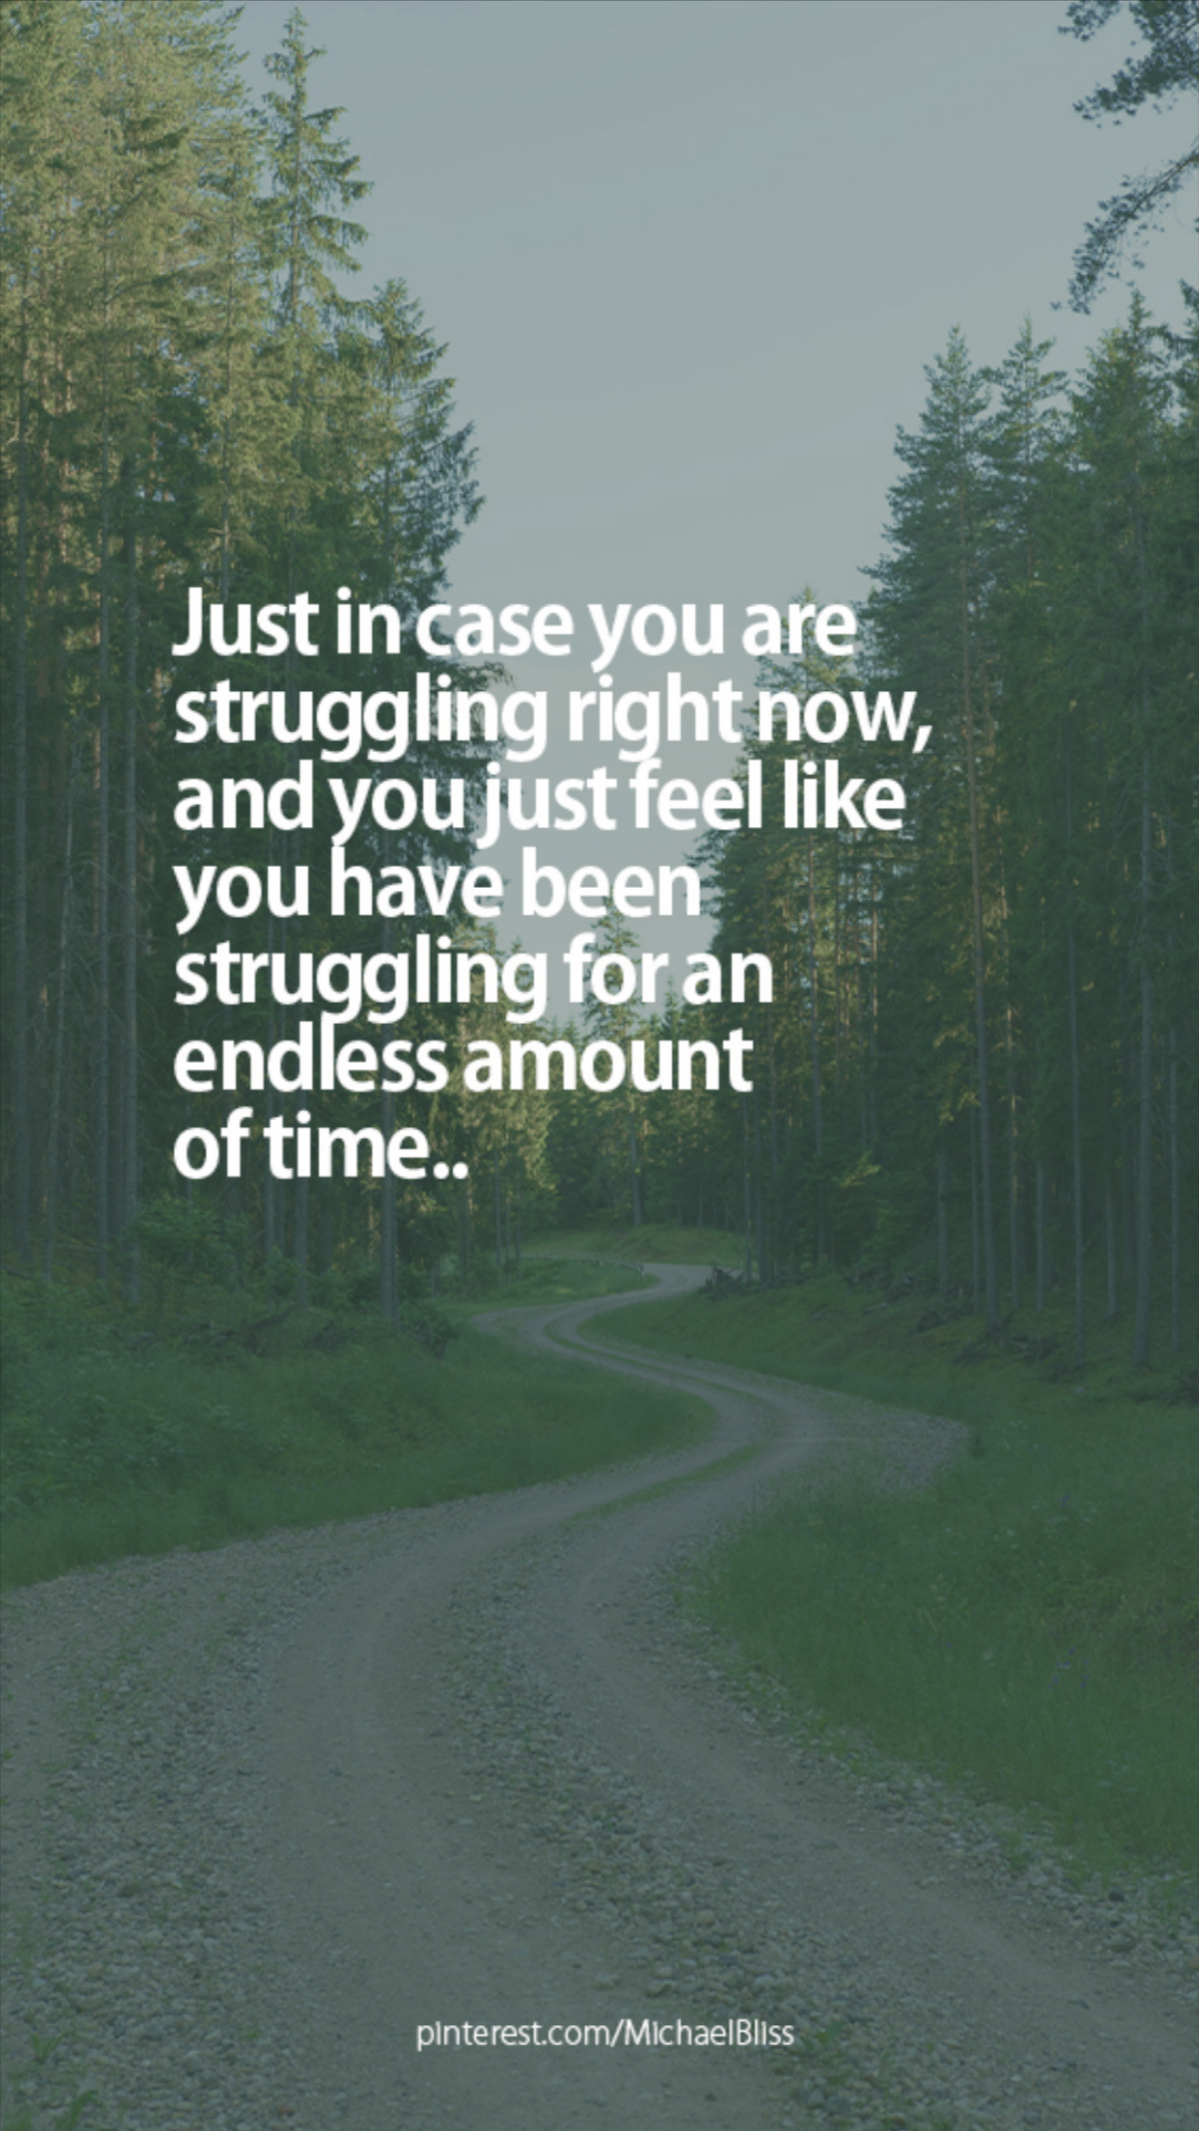 Just in case you are struggling right now